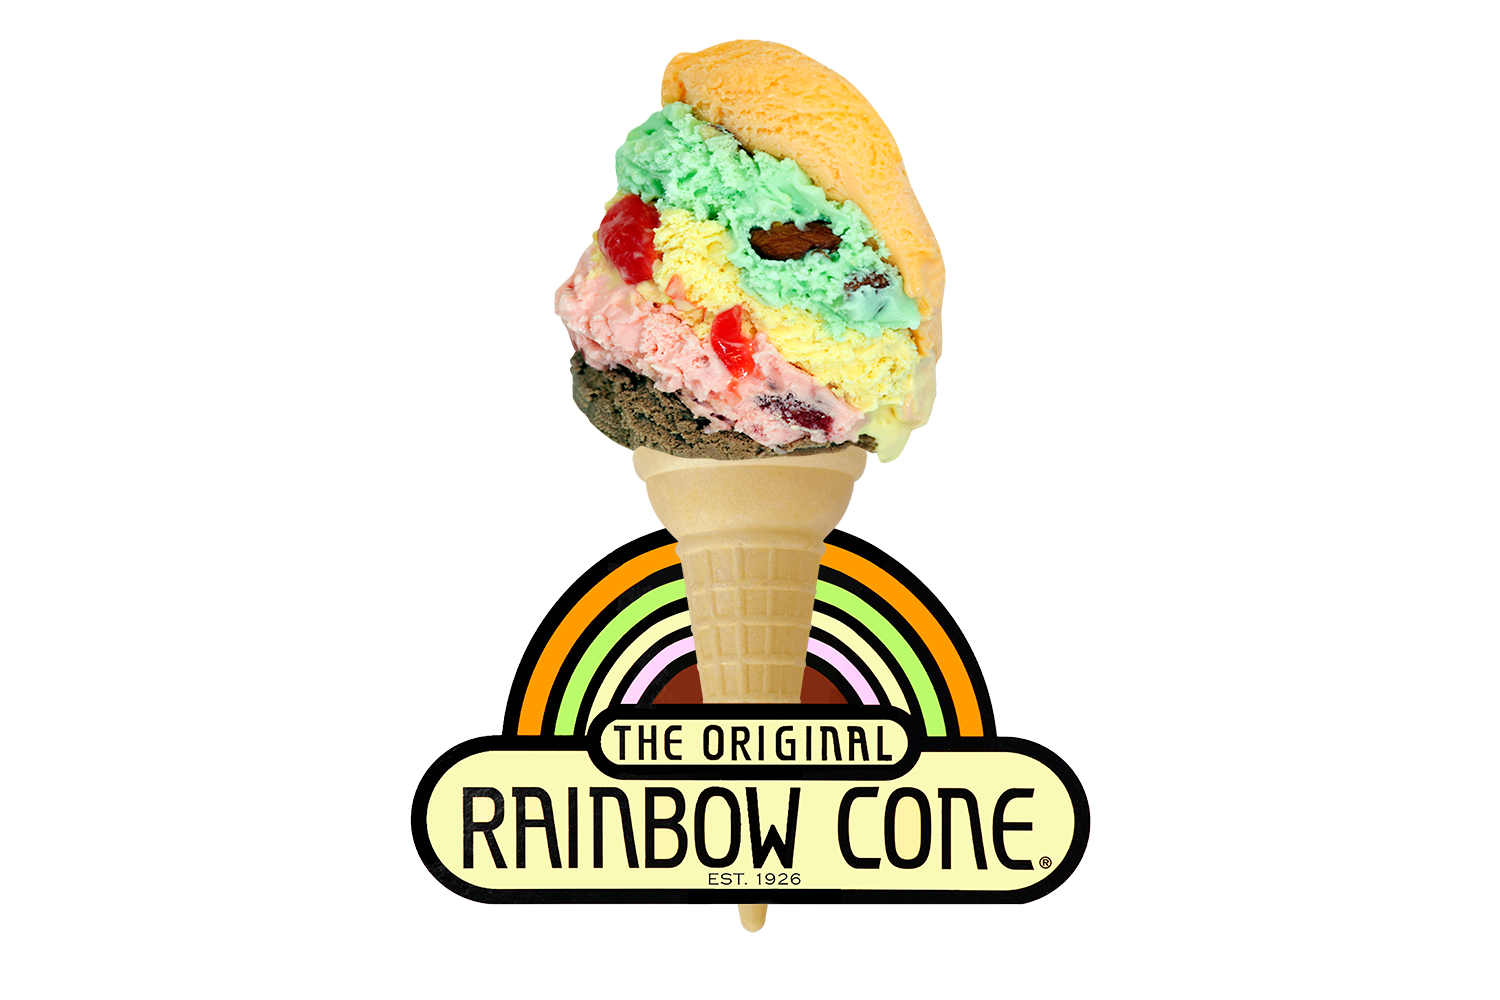 The Original Rainbow Cone